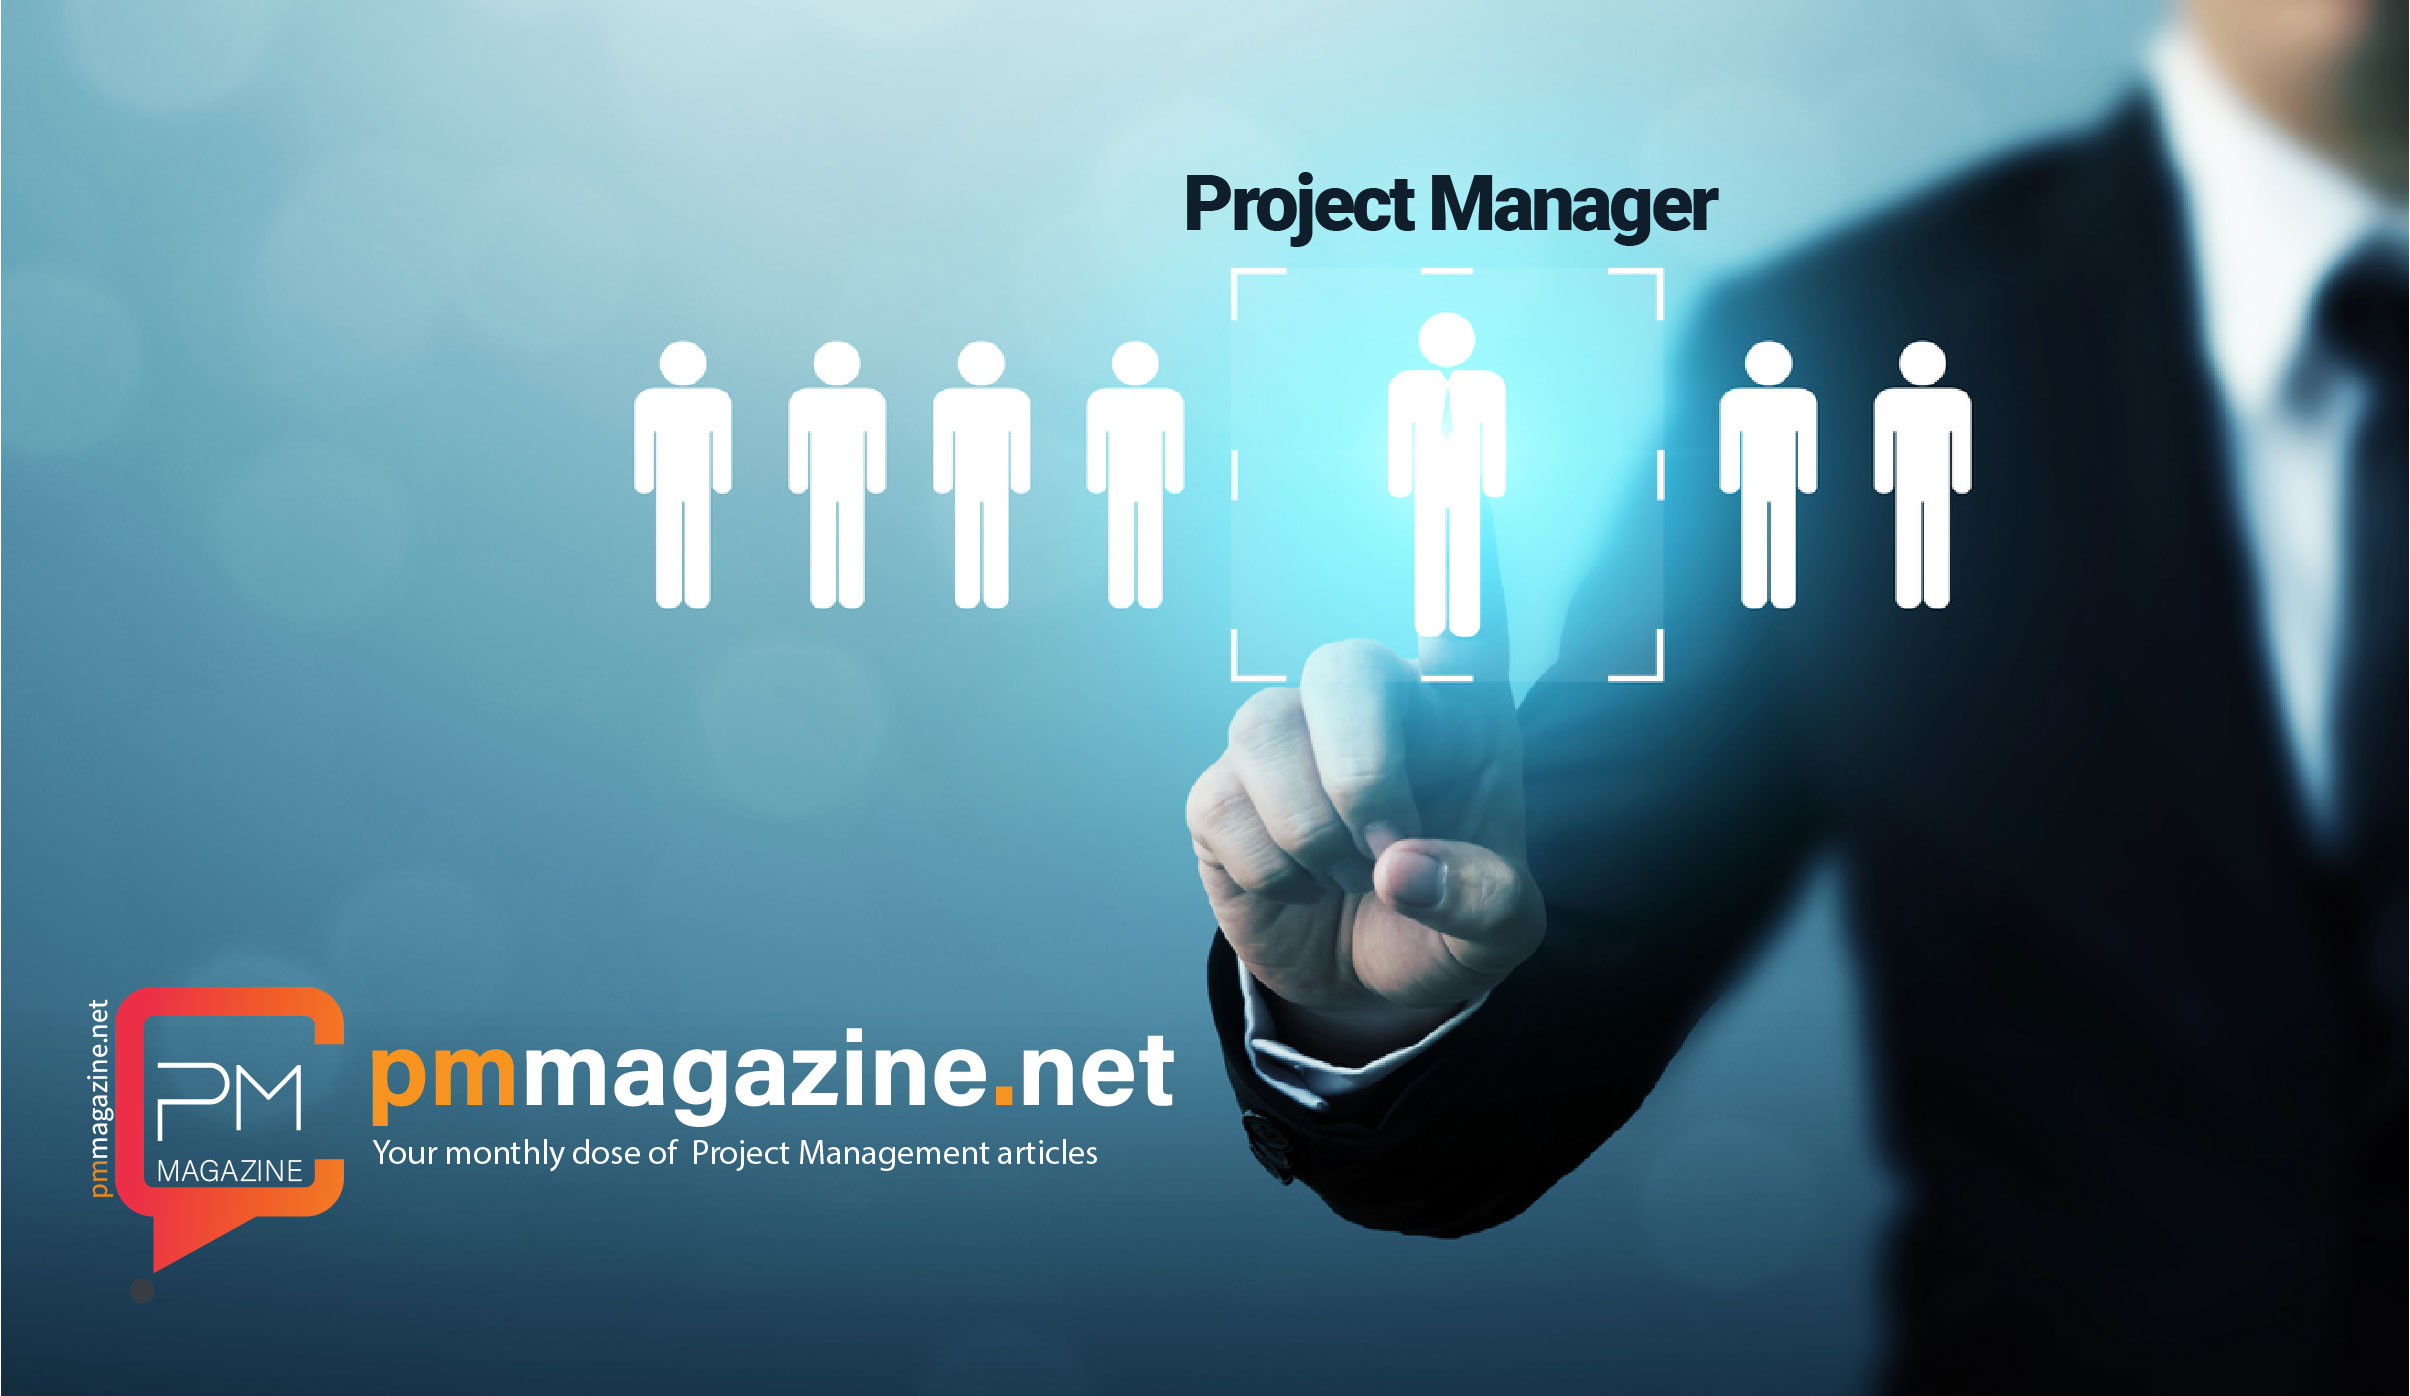 What is the most challenging: to recruit, introduce, engage, and retain new project managers? and why?